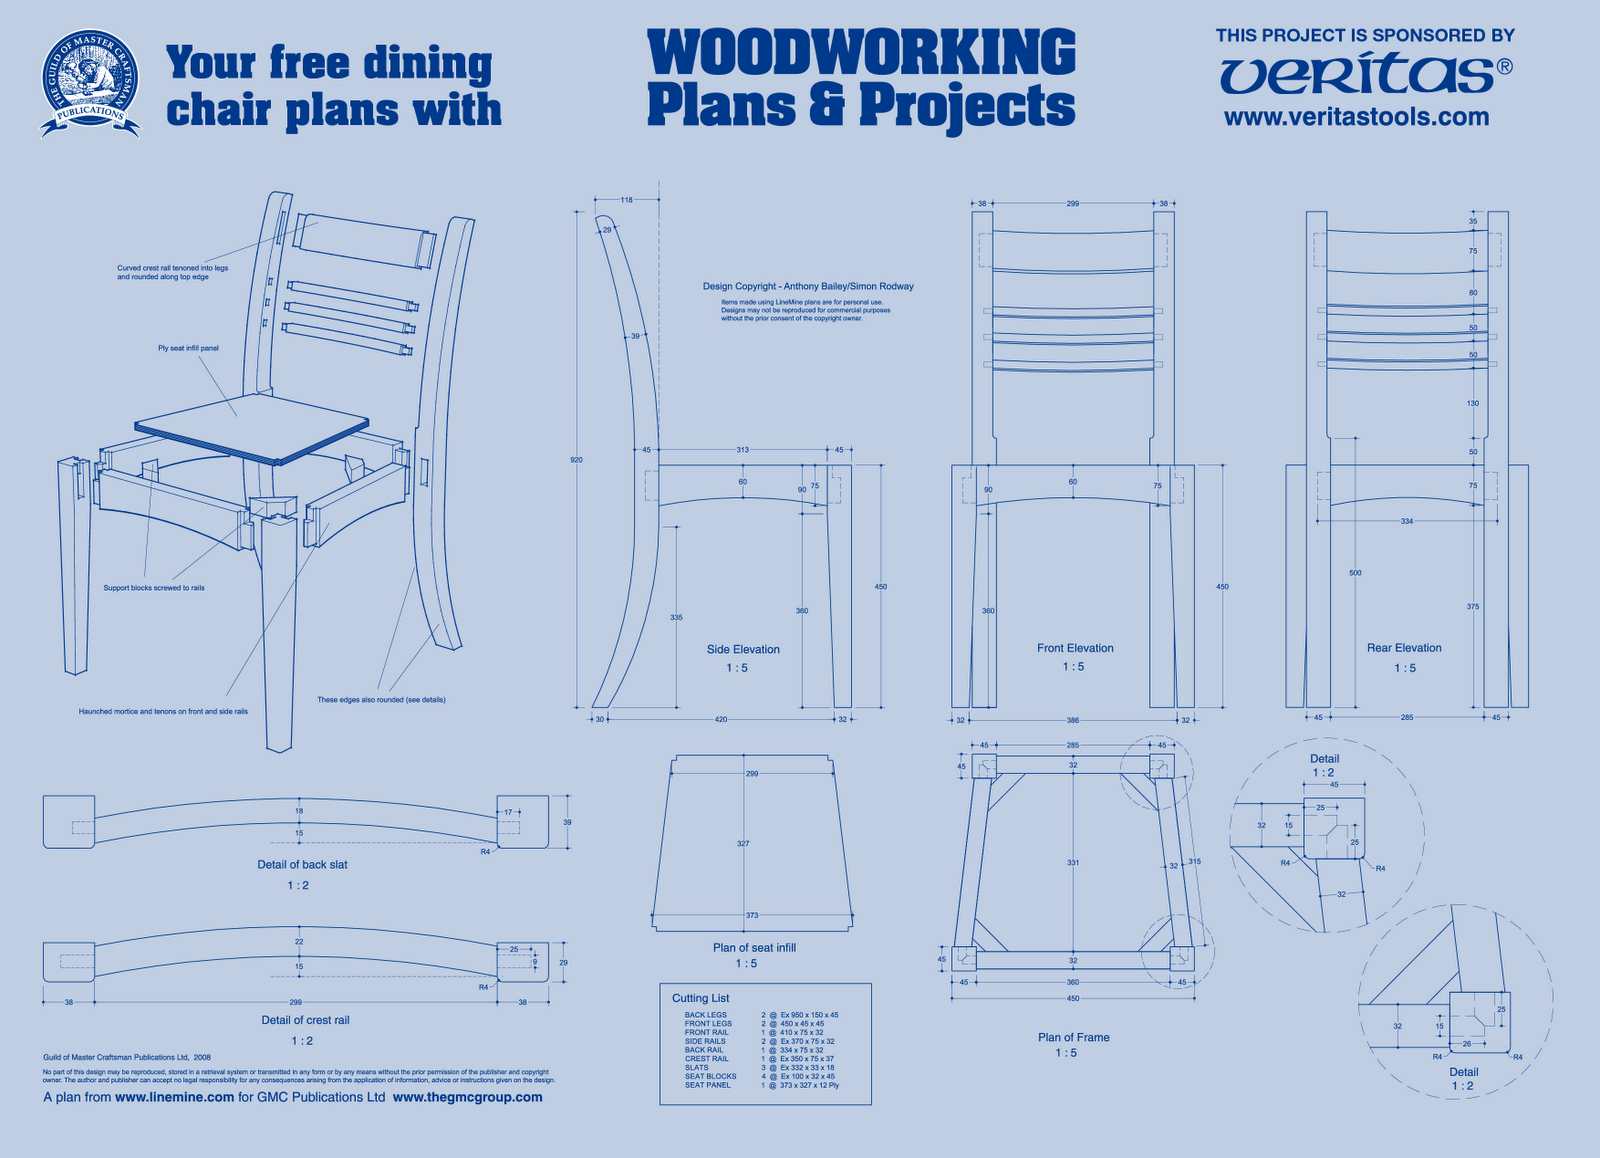 Wood Working Plans Shed Plans and more Dining Chair Plan : diningchairplan from mywoodworkingplans.blogspot.com size 1600 x 1158 png 632kB